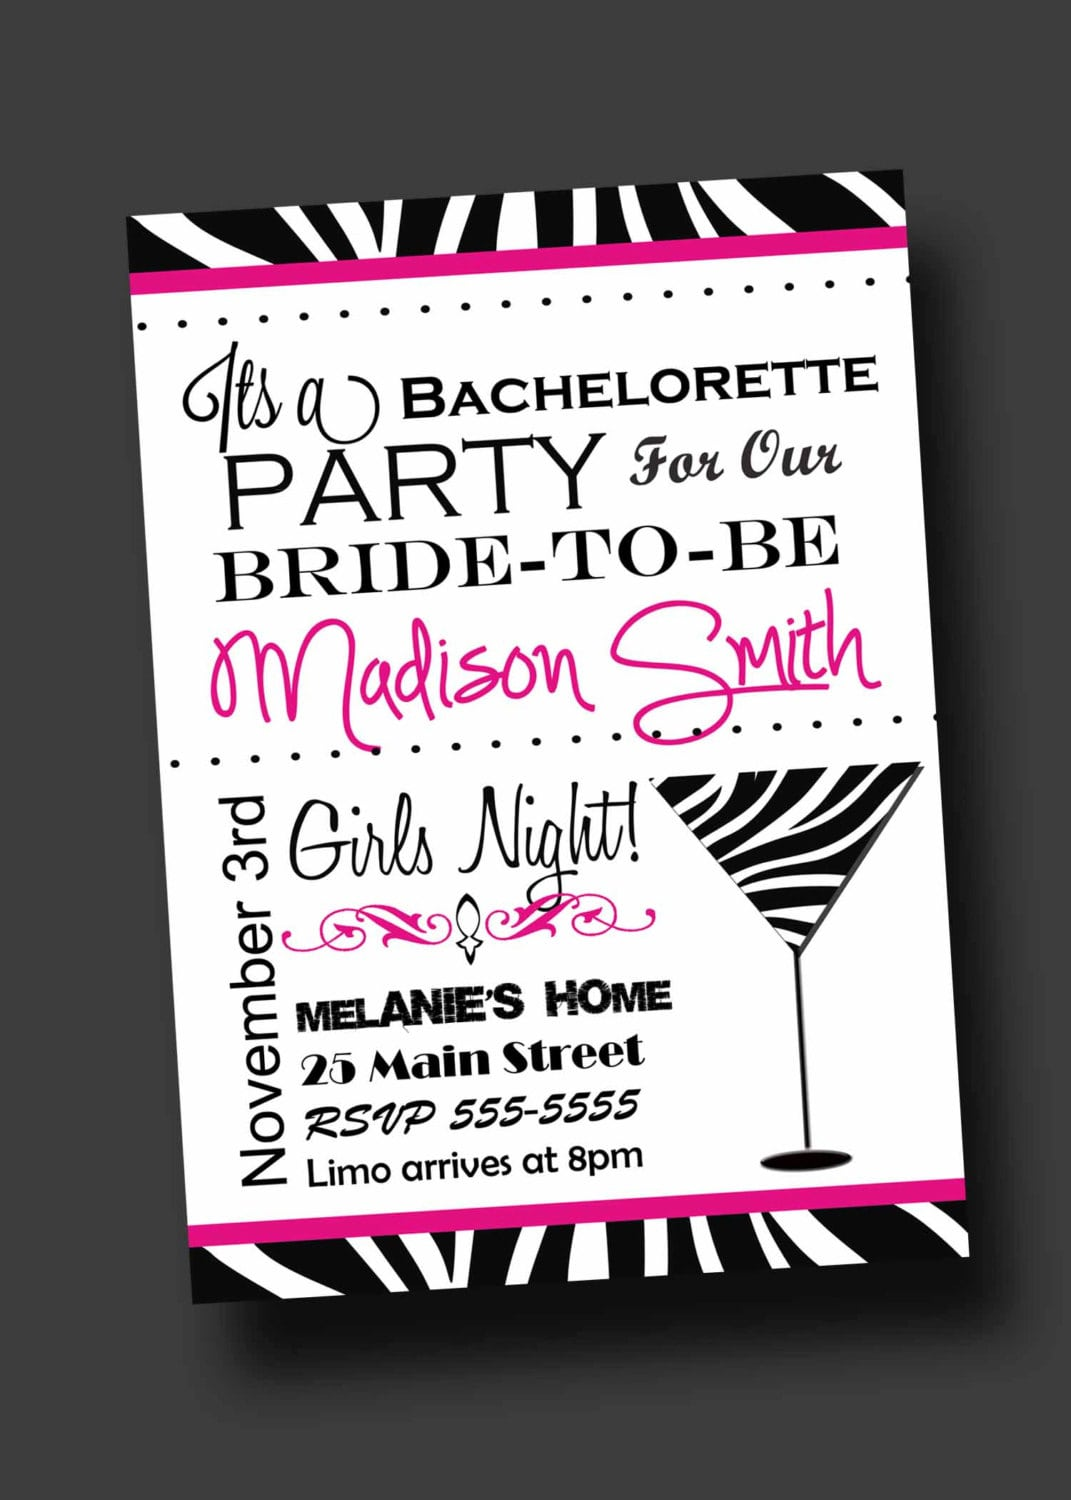 How To Create Bachelor Party Invitations Free Ideas